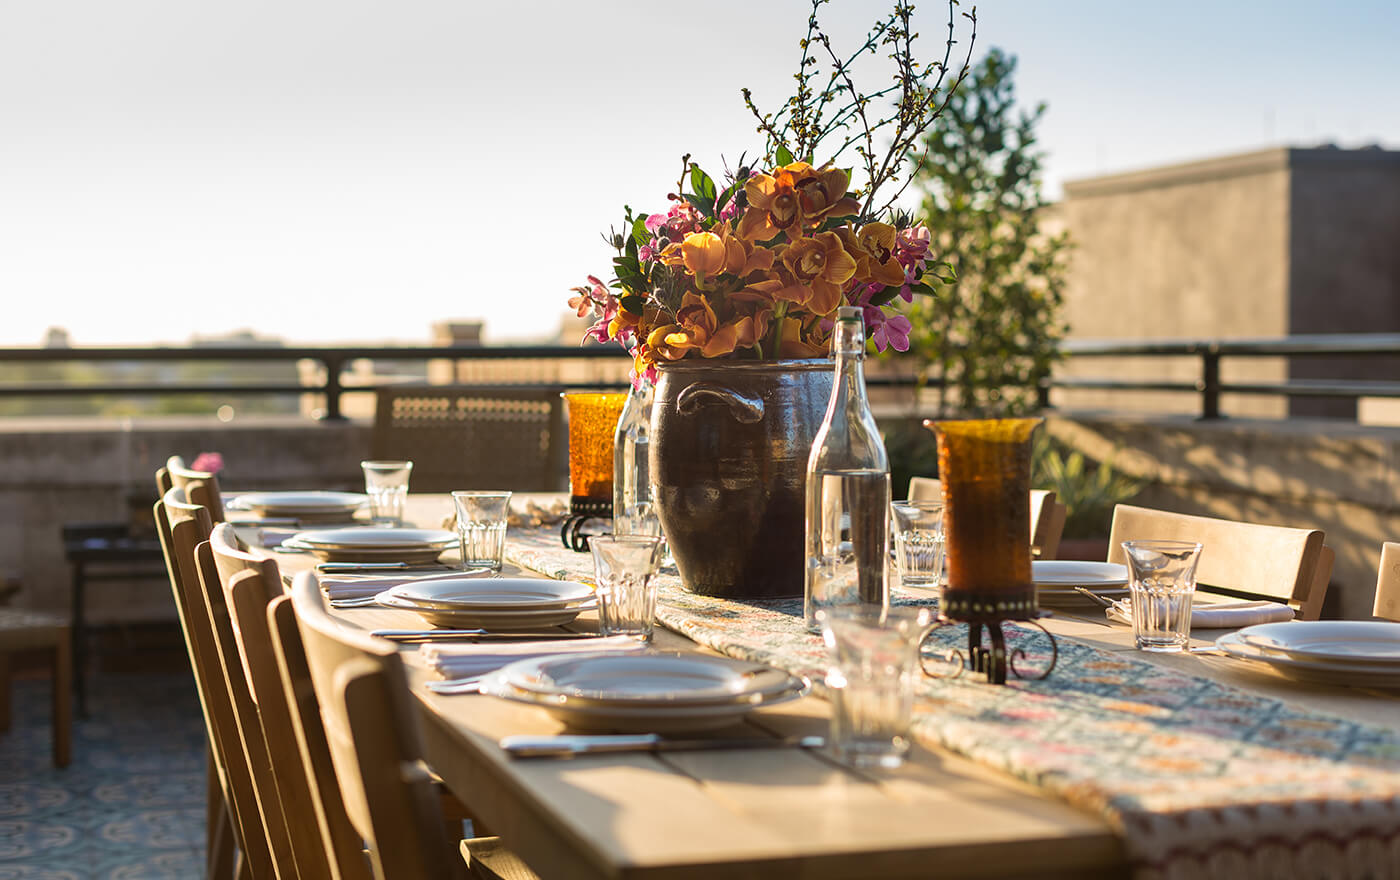 A picture of the terrace of Hotel Emma's Emma Koehler suite option. Pictured is an 8 person table topped with a bouquet of orange and pink flowers with a view of the city.